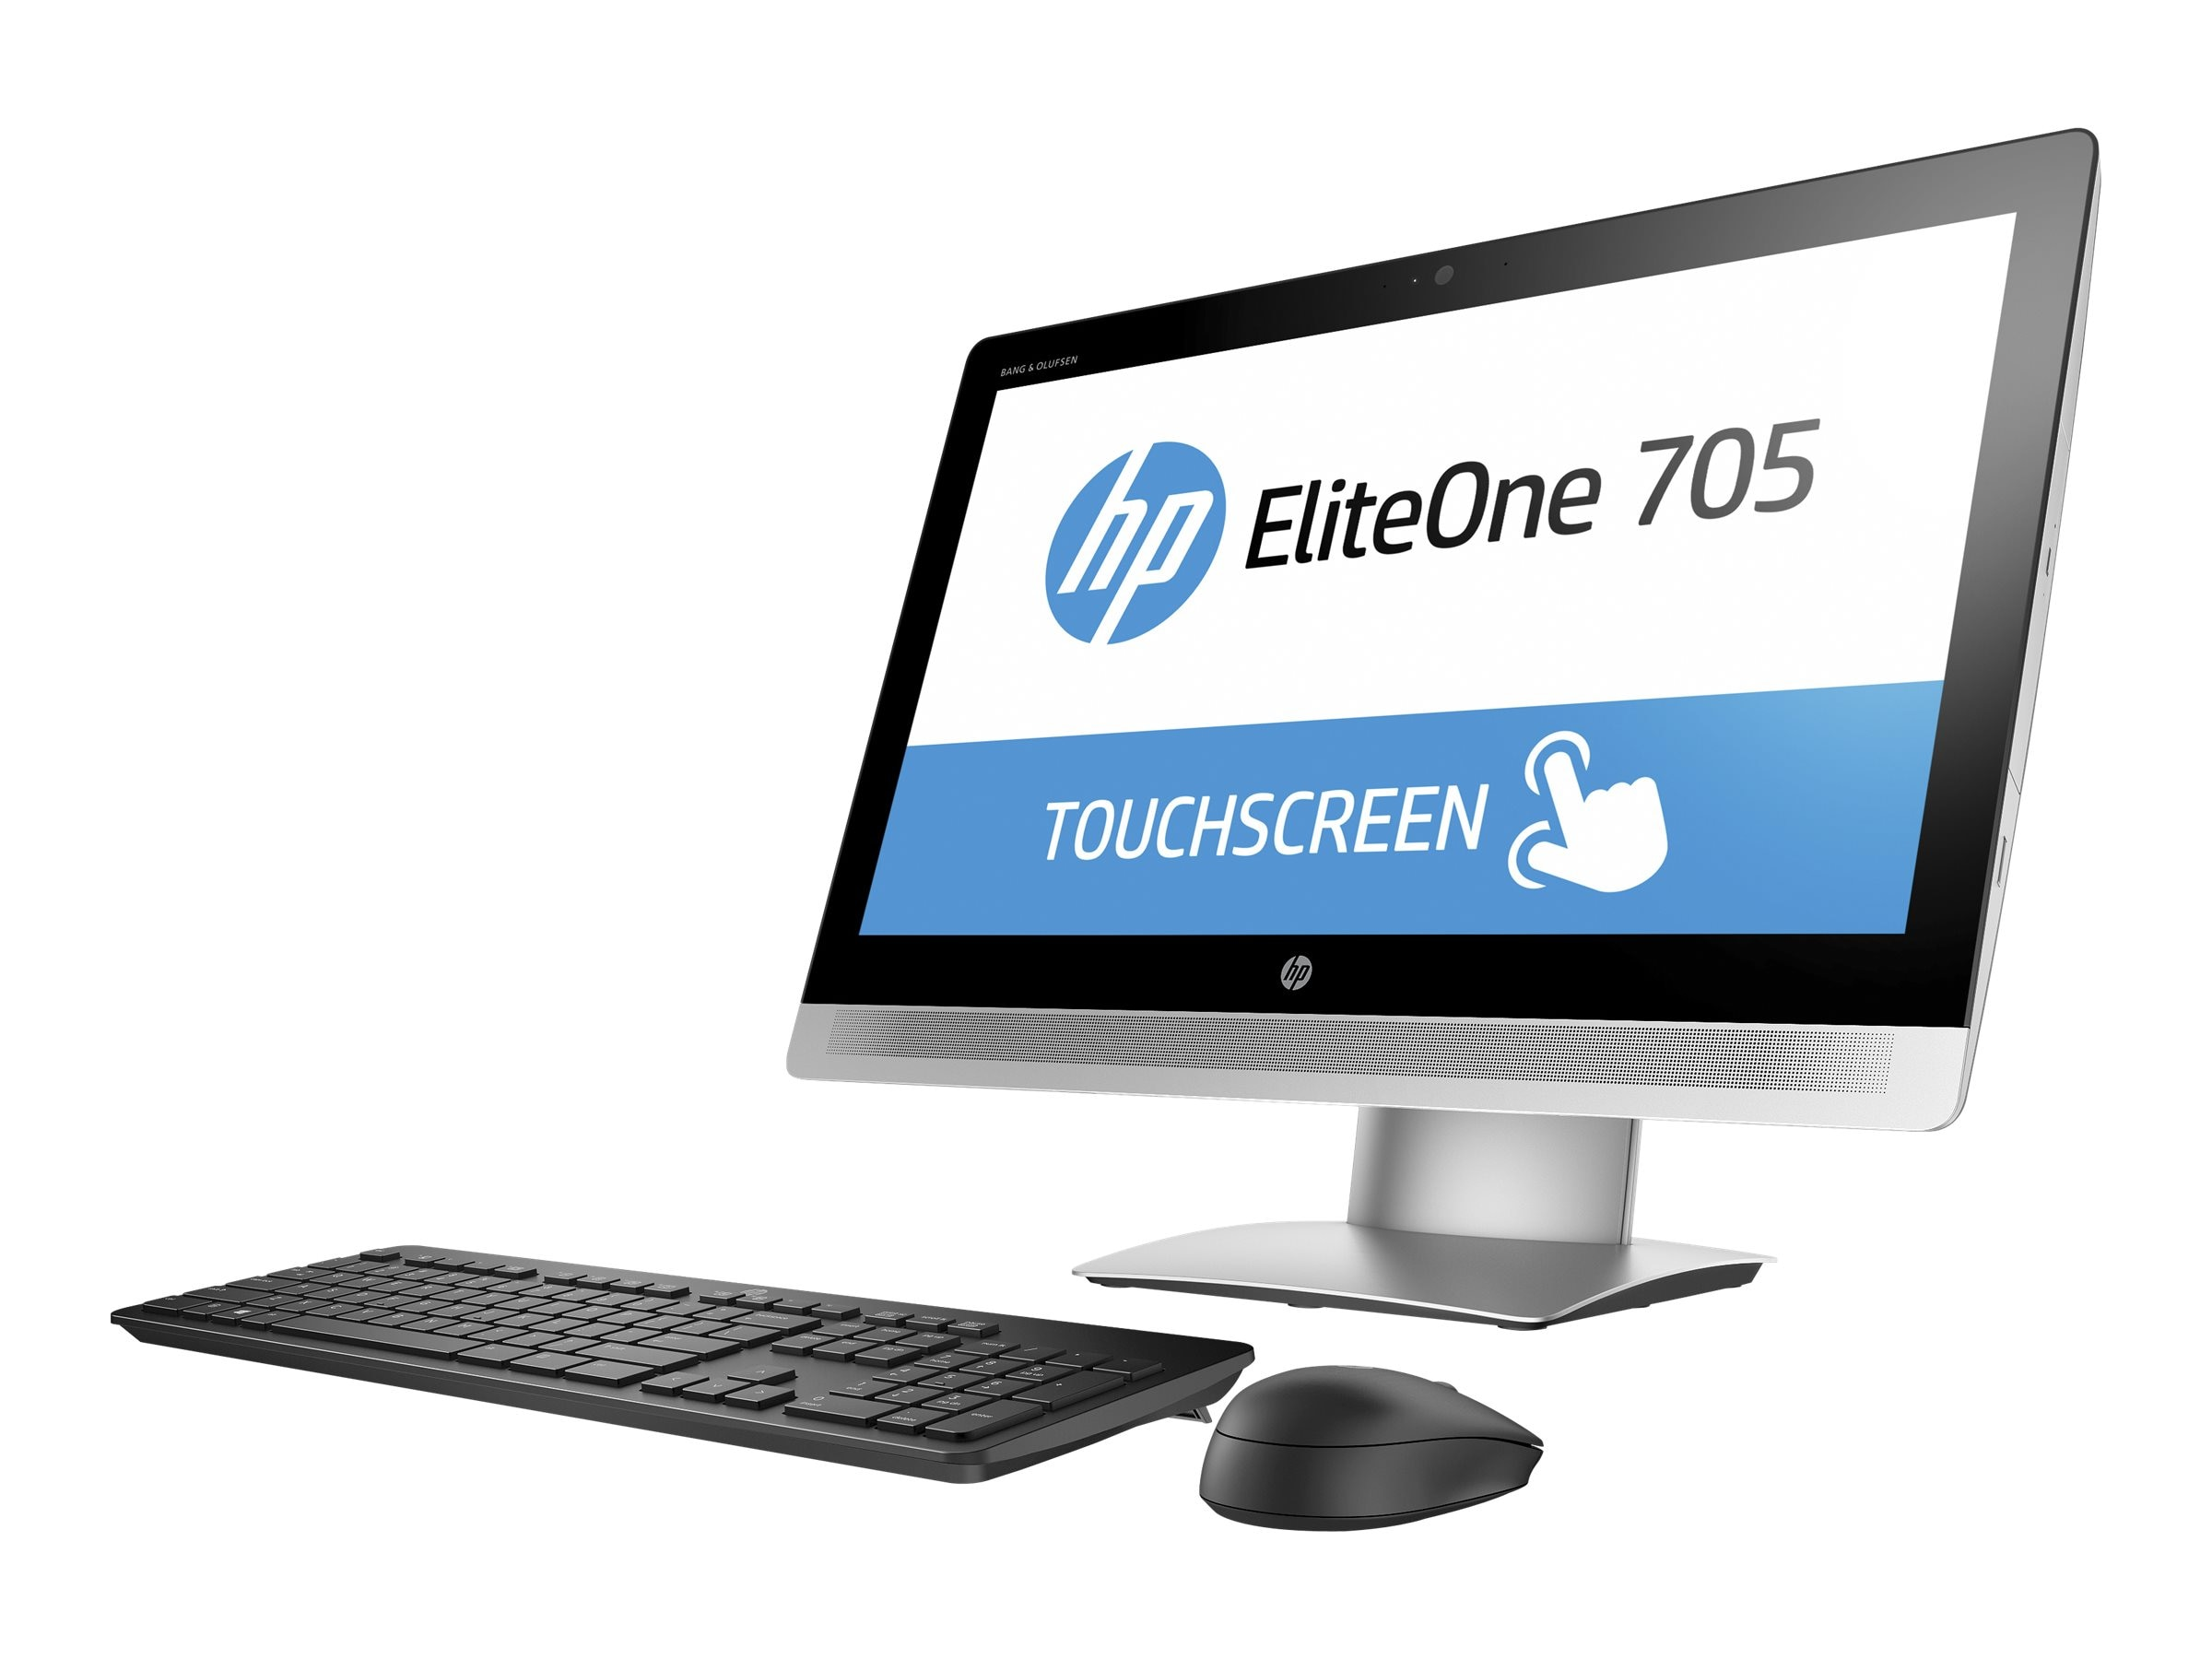 HP EliteOne 705 G2 AIO Pro A10-8750B 3.6GHz 8GB 1TB DVD-RW ac BT WC FR 23 FHD MT W7P64-W10P